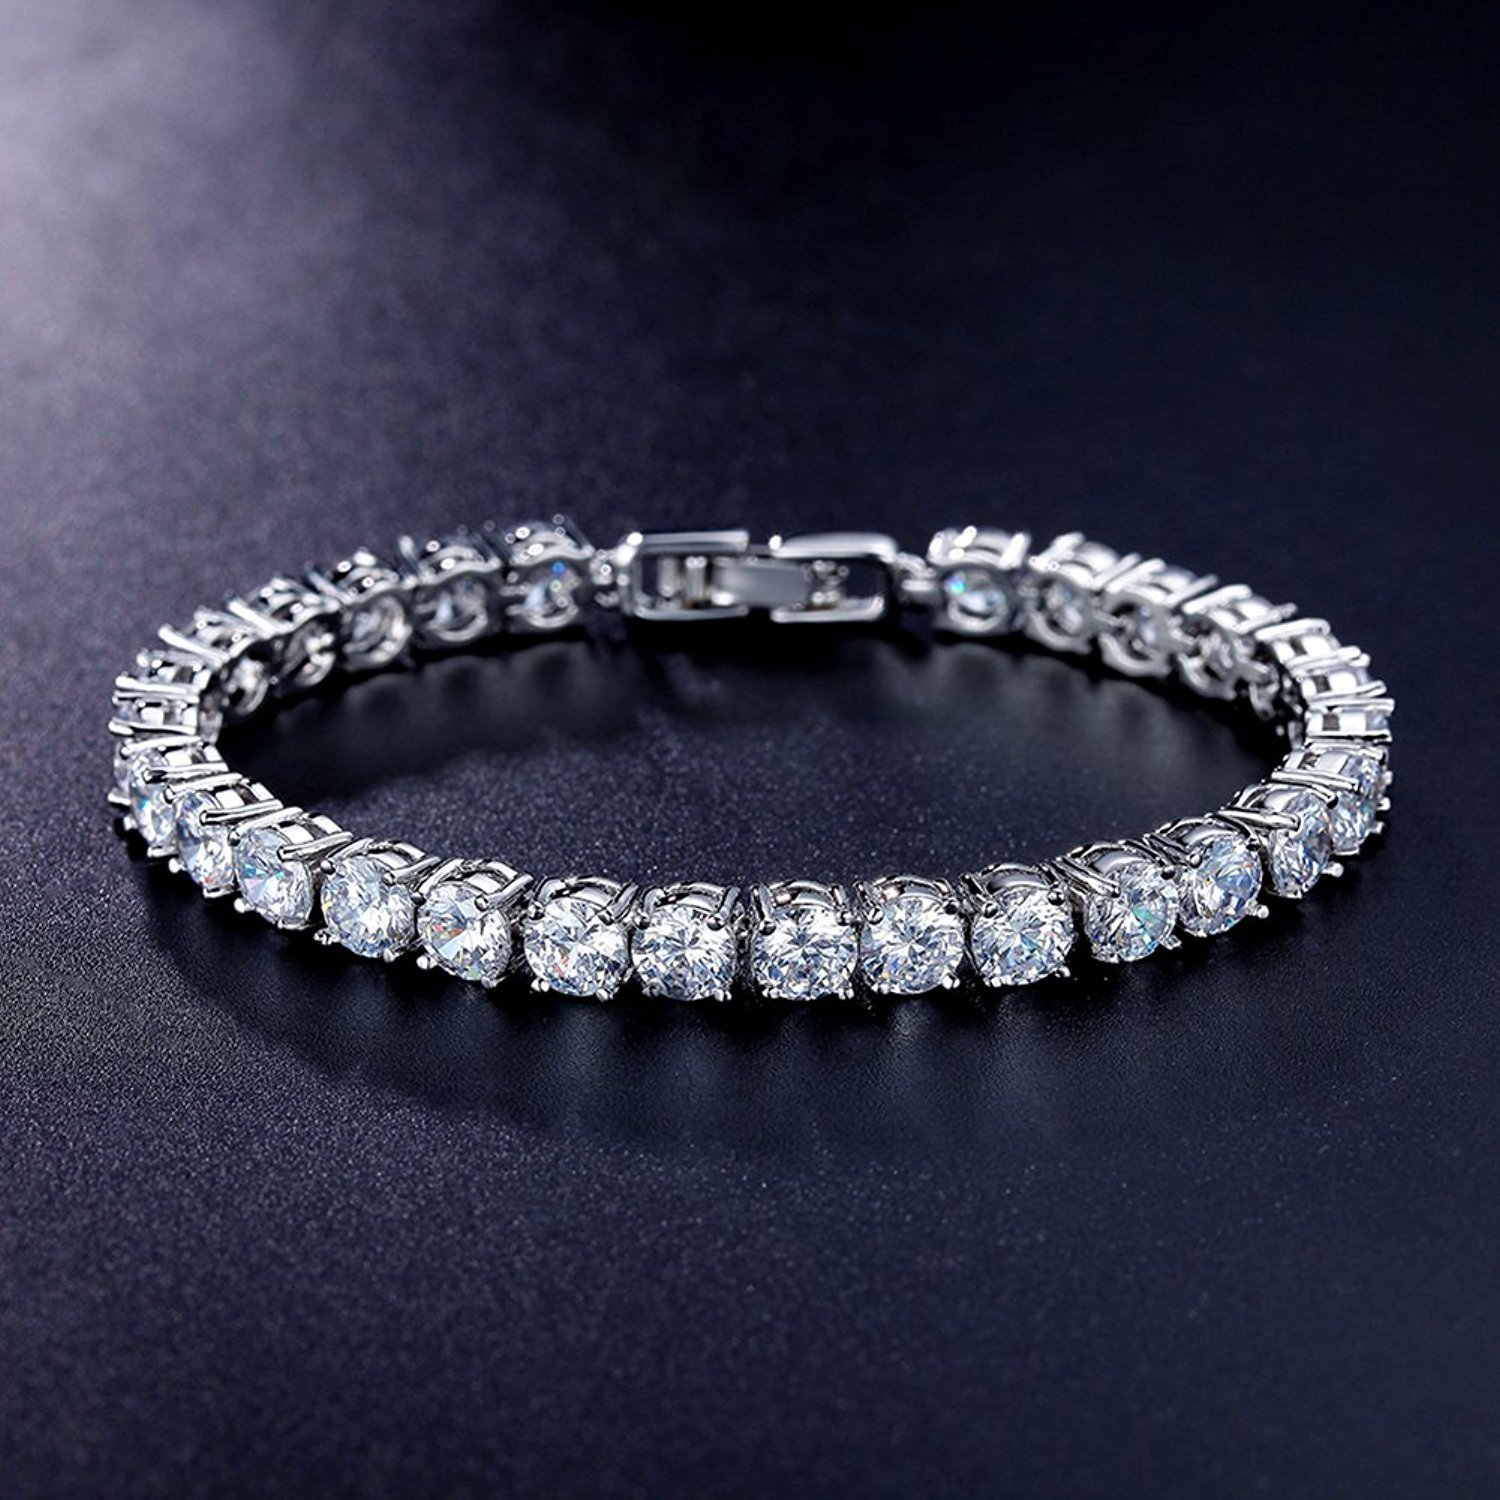 Meetyoo Tennis Bracelet With Swarovski Elements Crystal Jewelry Women Lady Zirconia Platinum Plated Bangle for her by Meetyoo (Image #2)